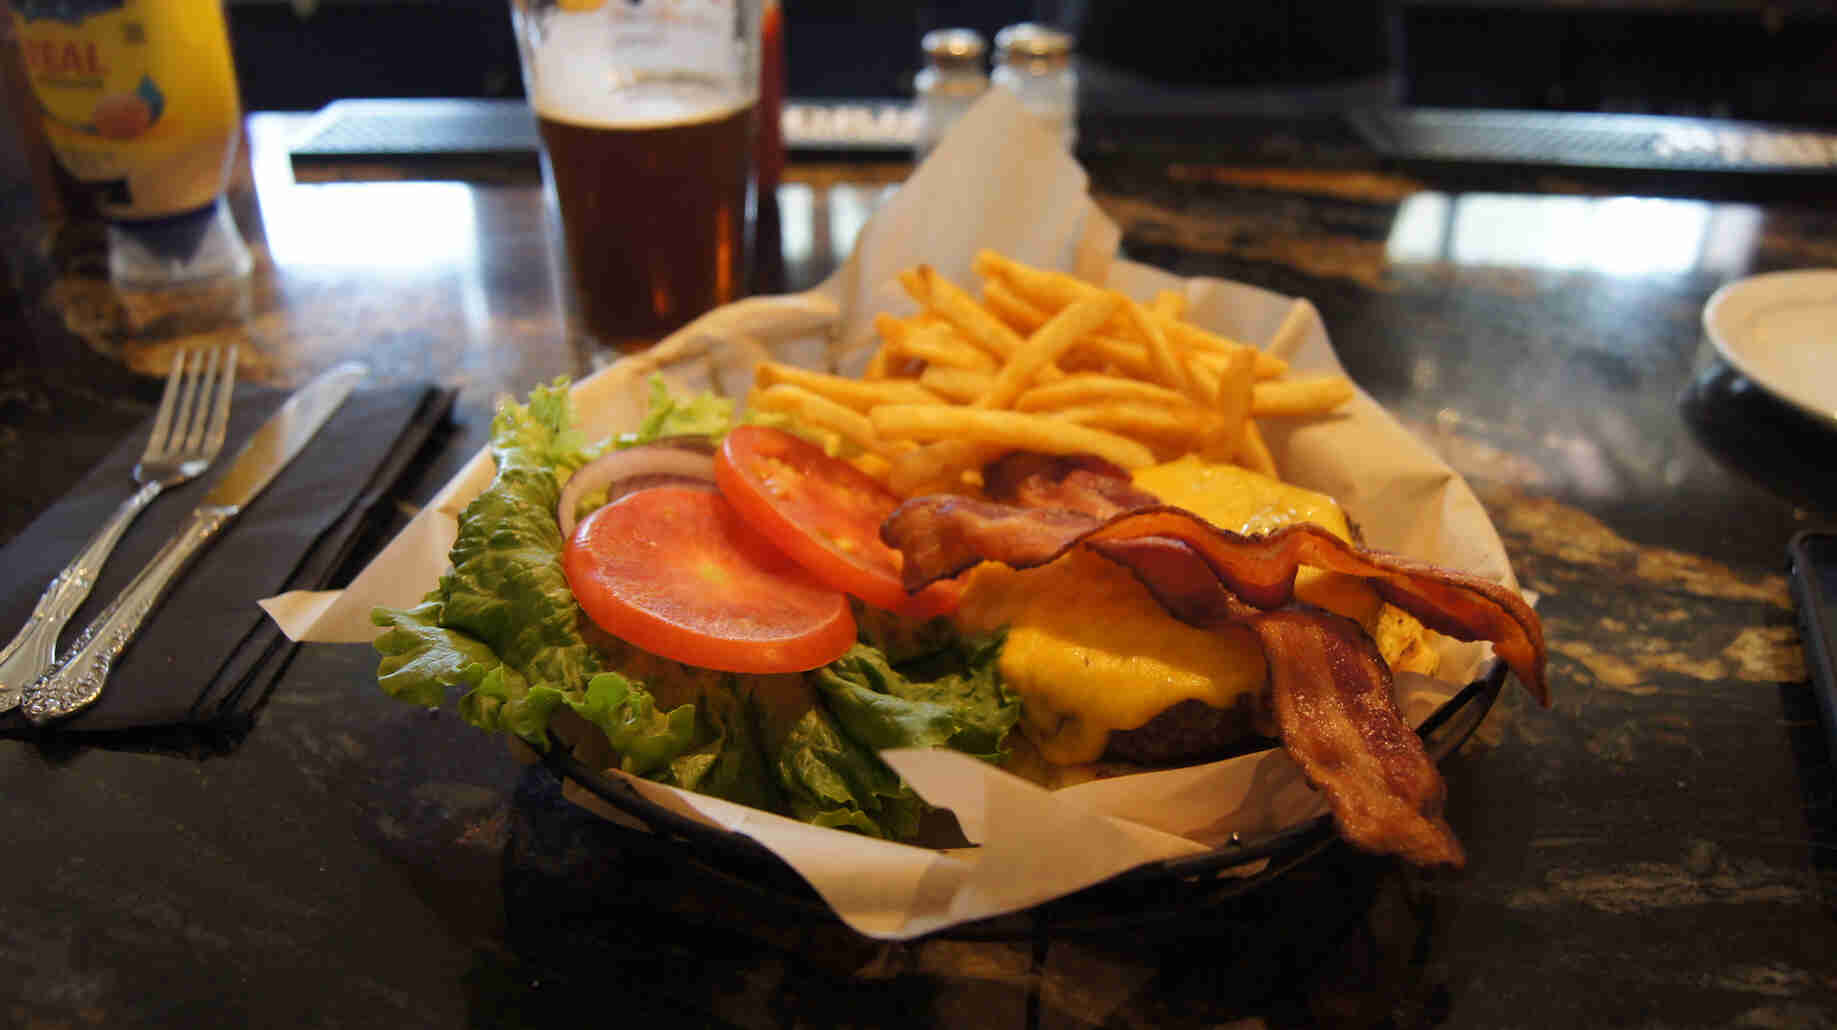 A food basket, with burger and fries, on a bar top